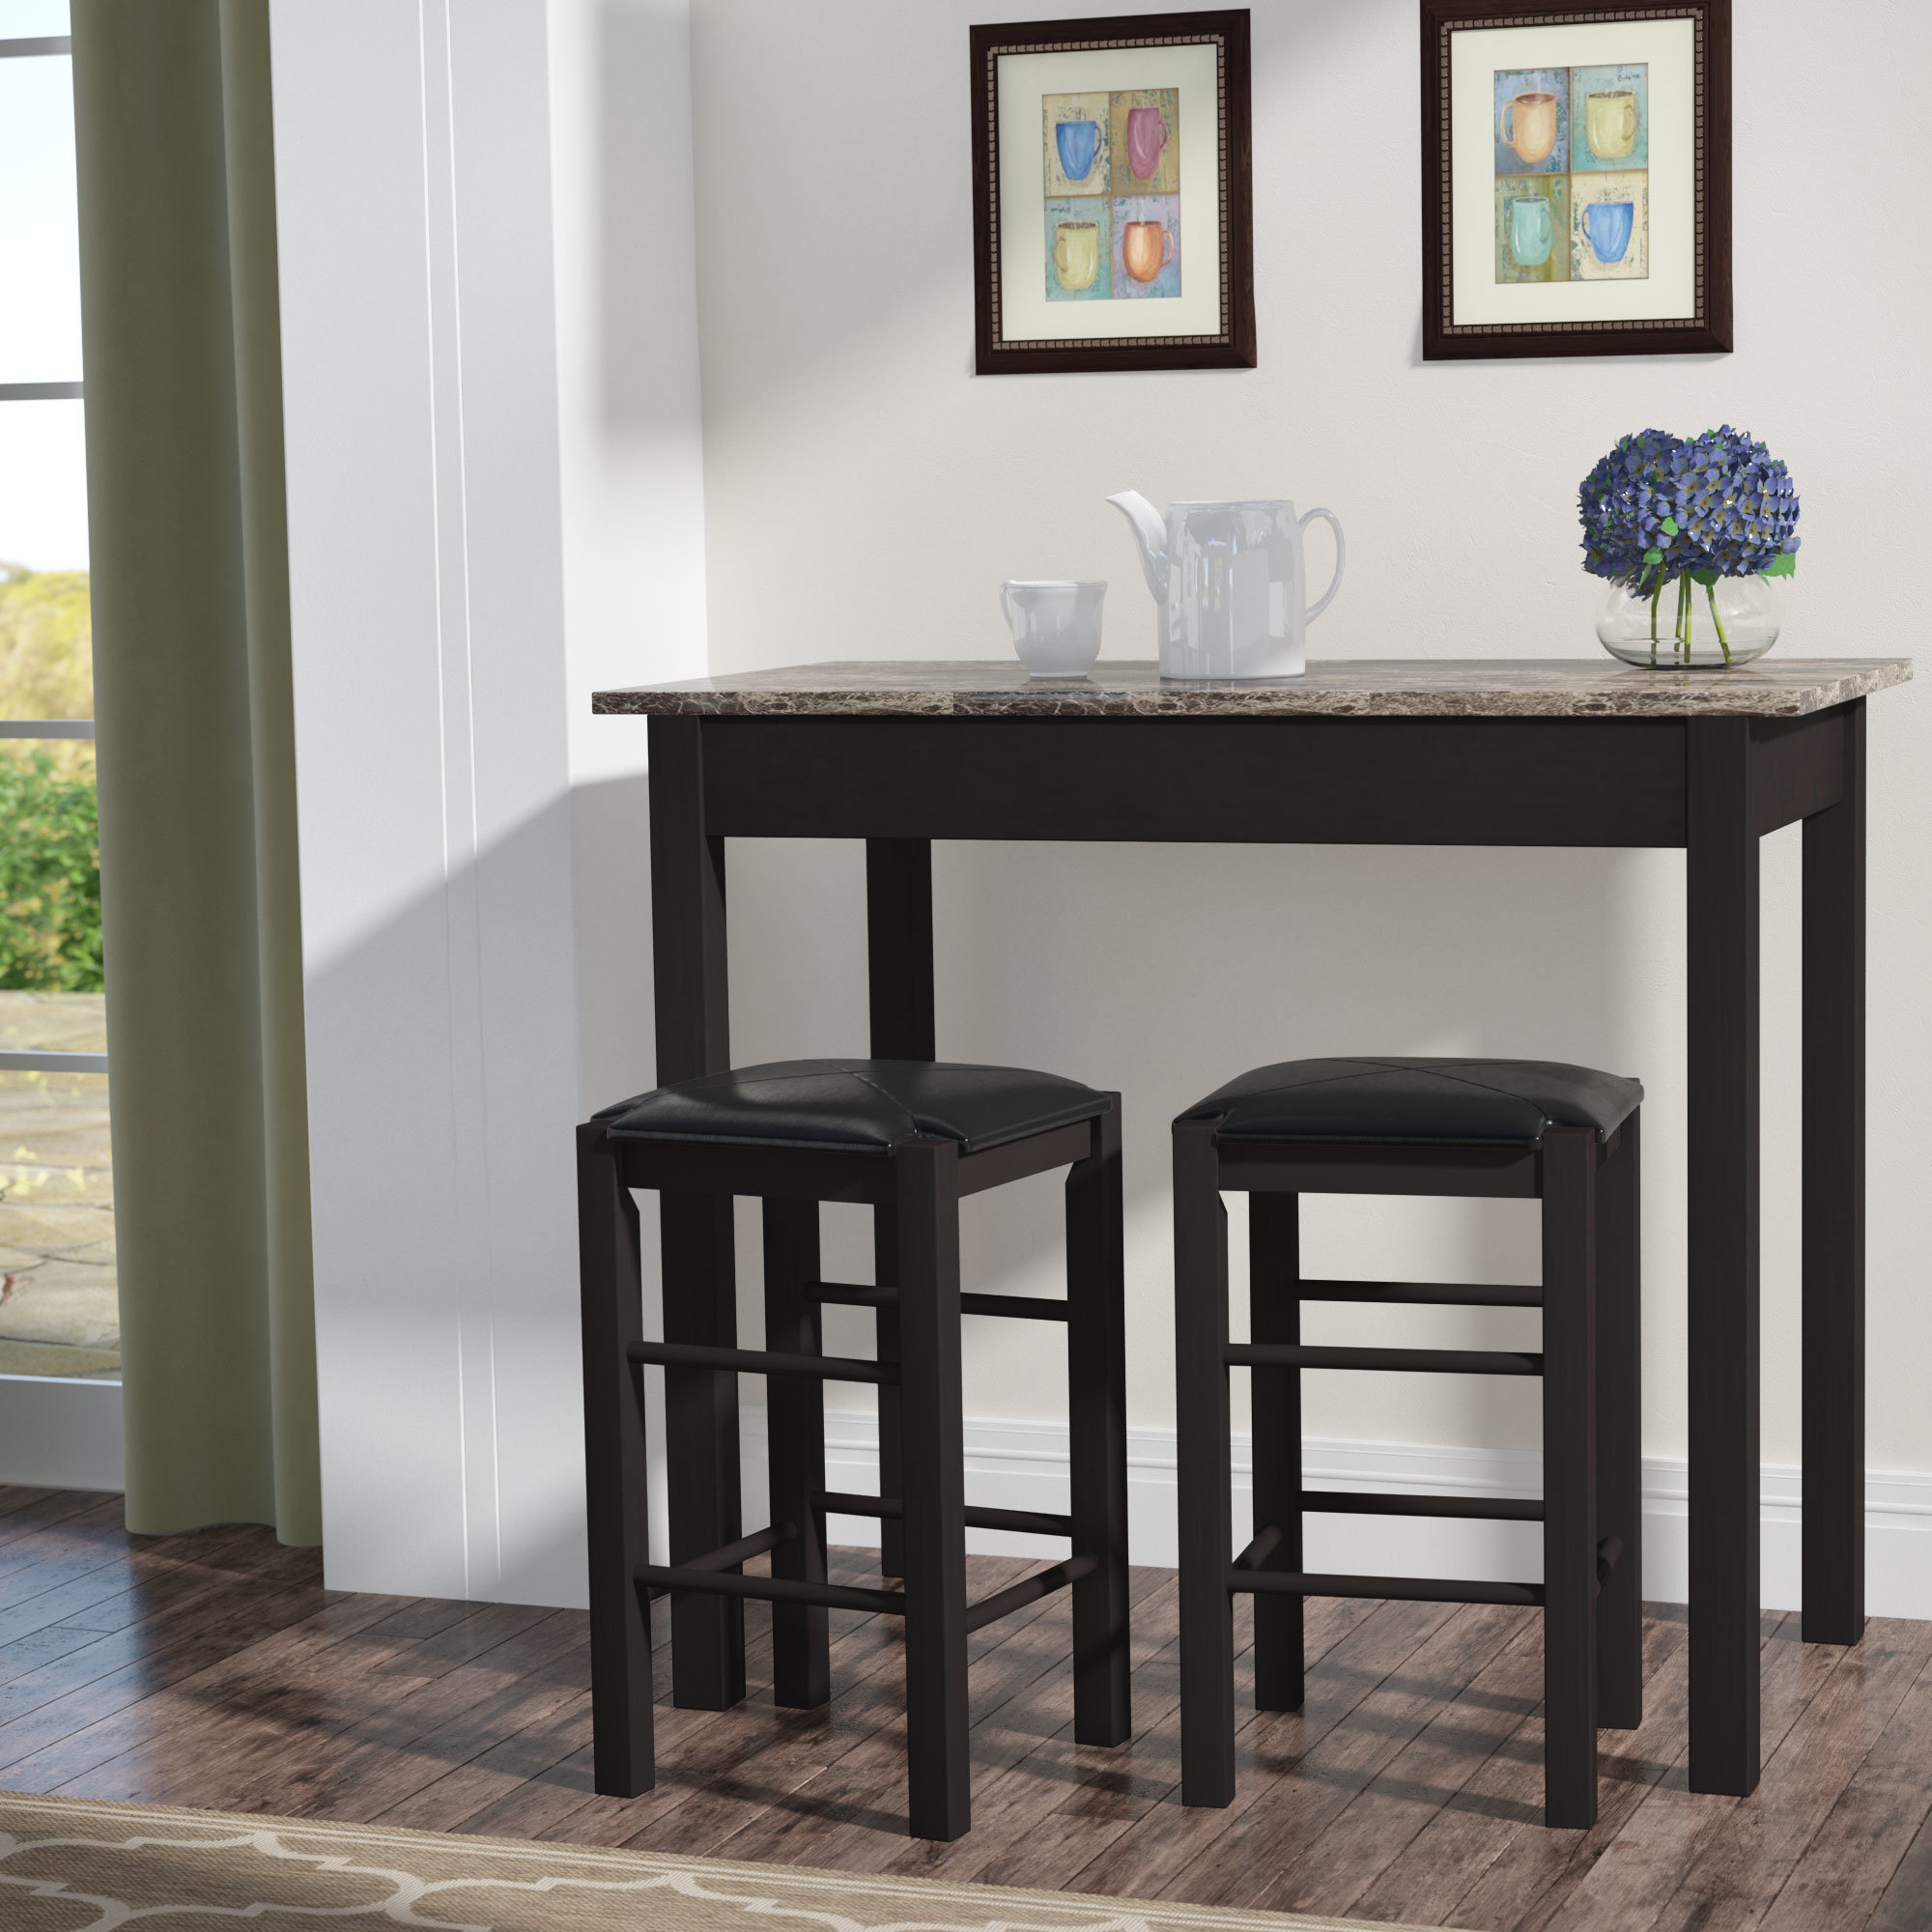 Wayfair Within Well Liked West Hill Family Table 3 Piece Dining Sets (View 9 of 20)